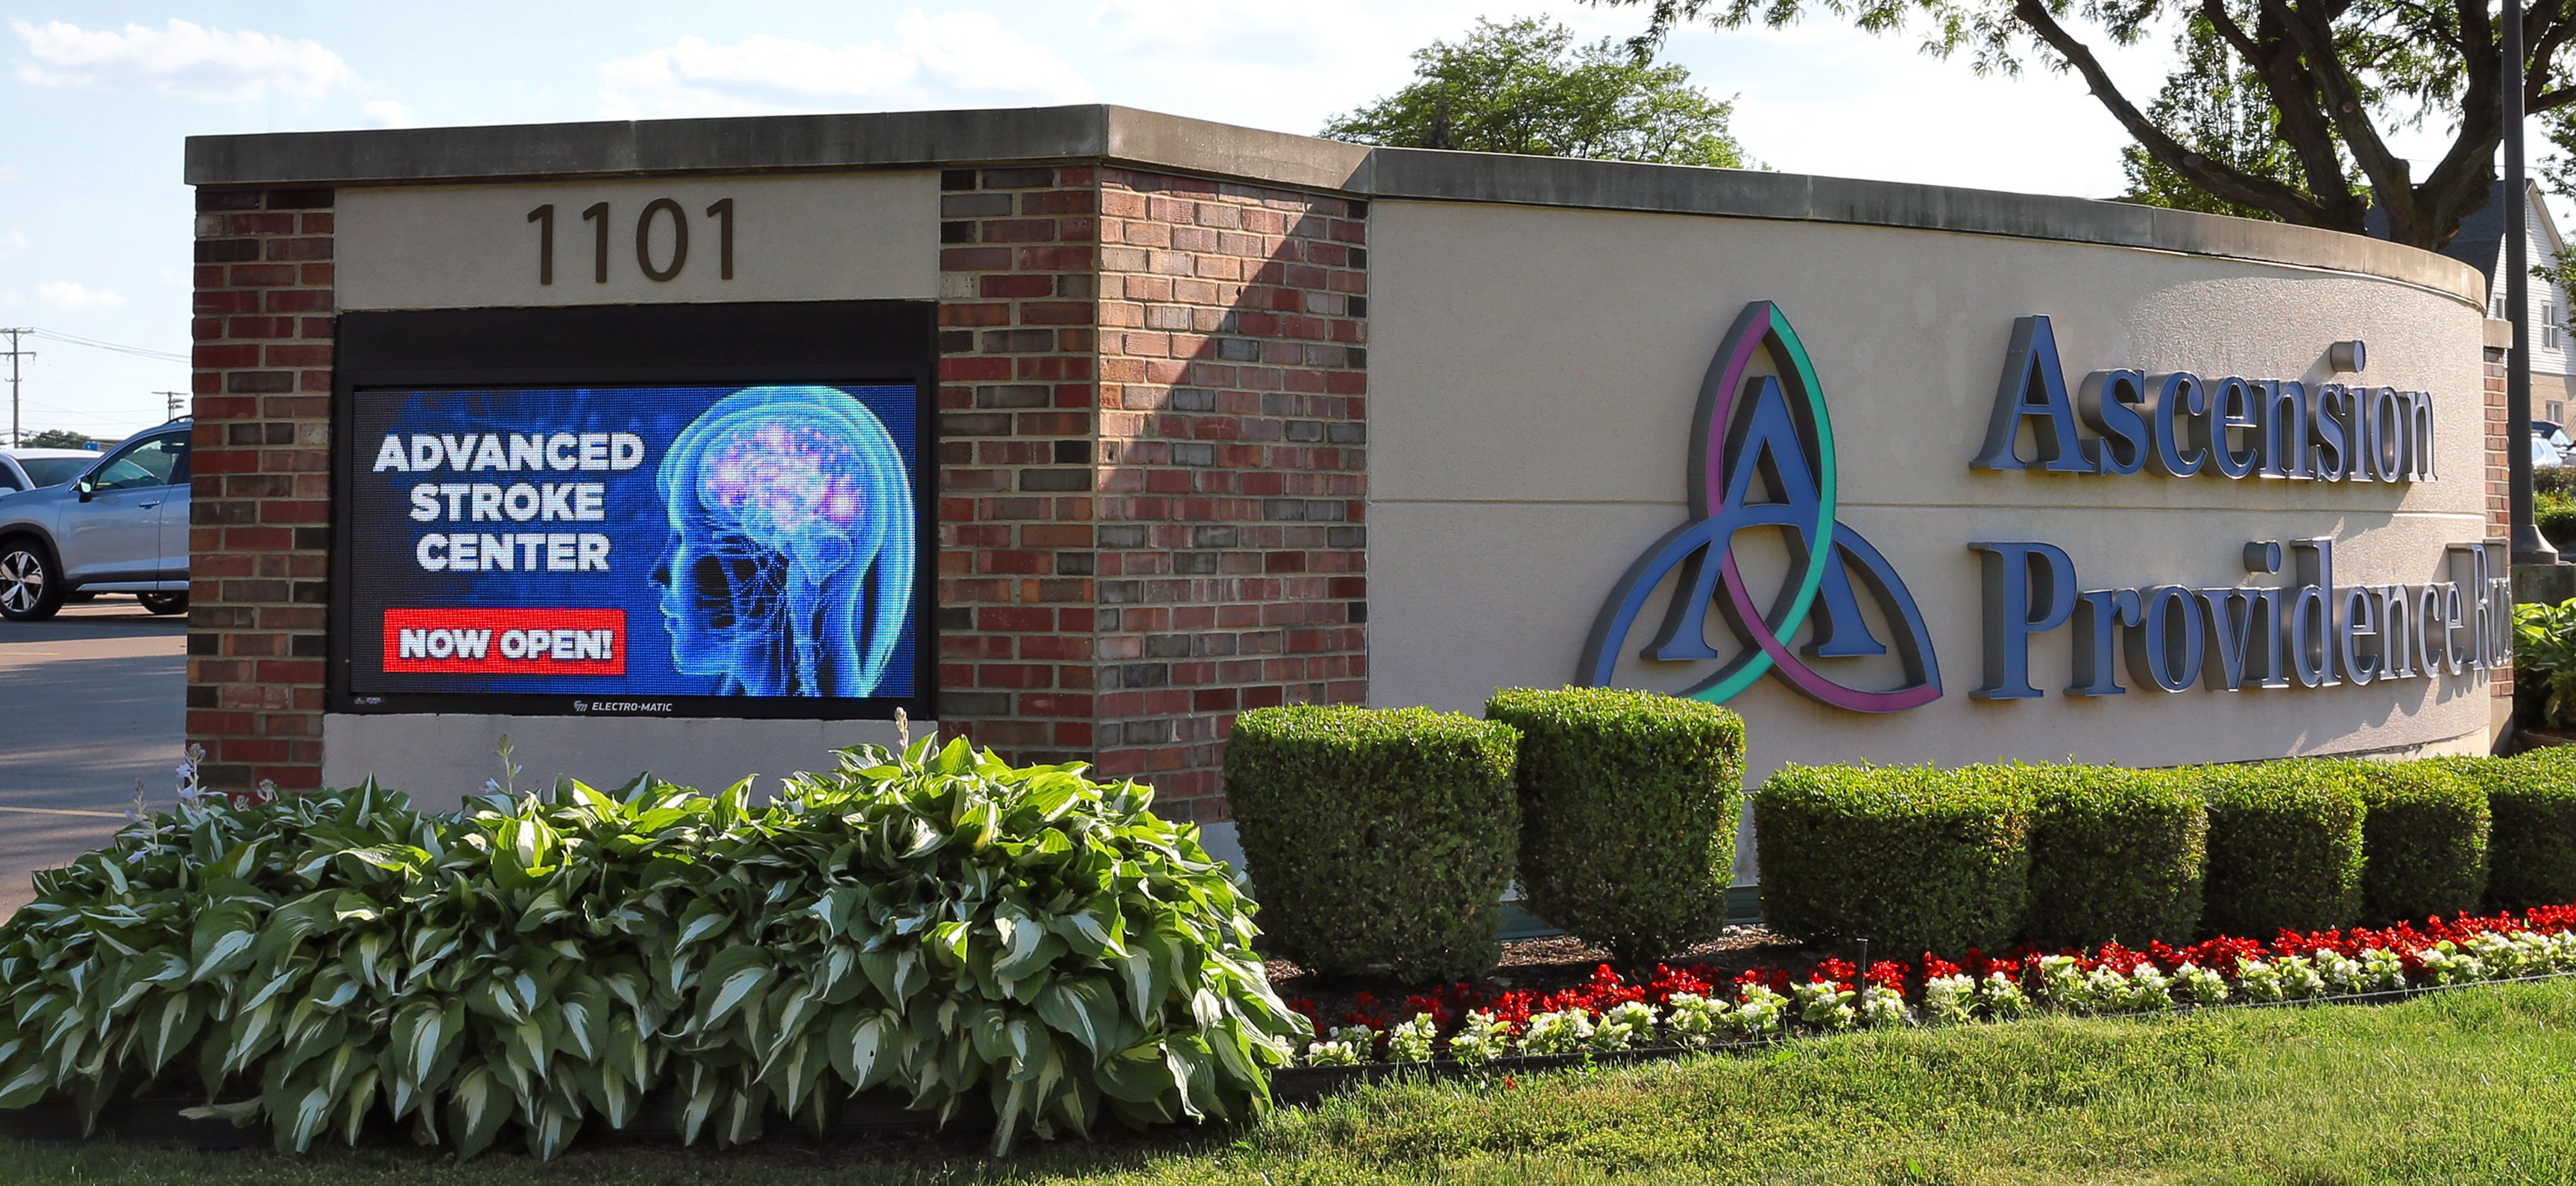 Ascension Hospital Loves New LED Display and Content from EM Visual